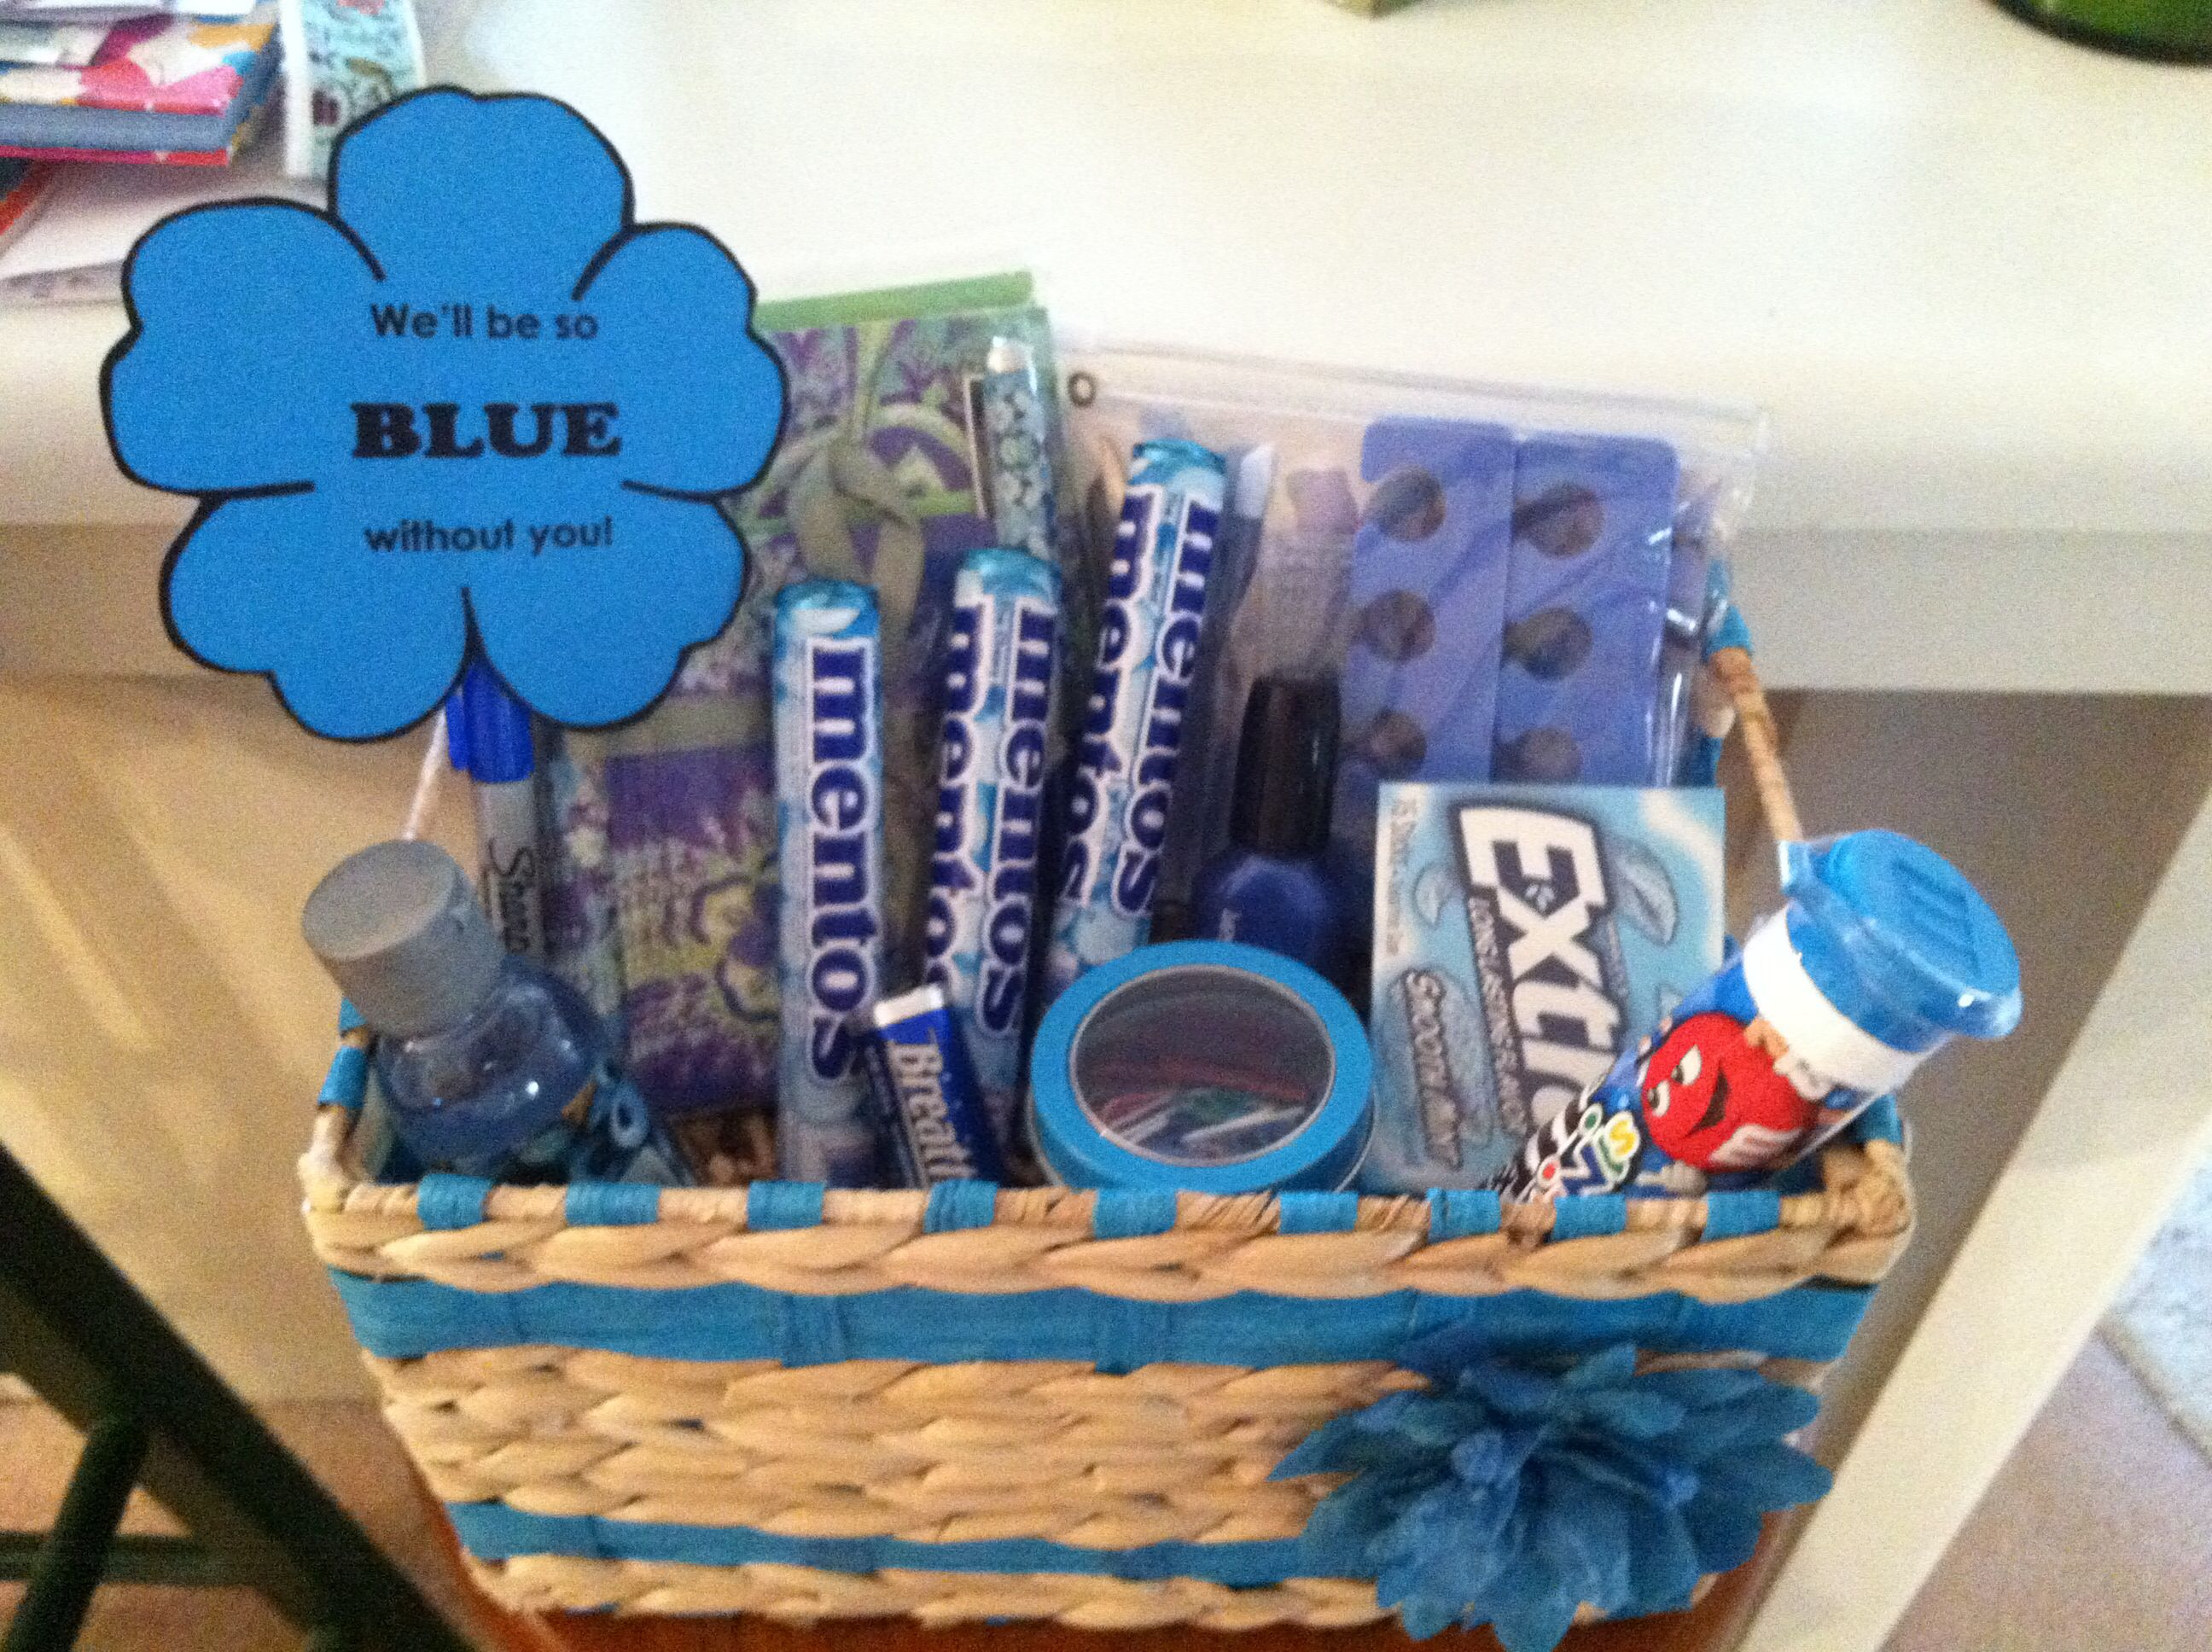 Farewell Gift For A Coworker Or Neighbor Goodbye Gifts Birthday Gift Baskets Goodbye Gifts For Coworkers